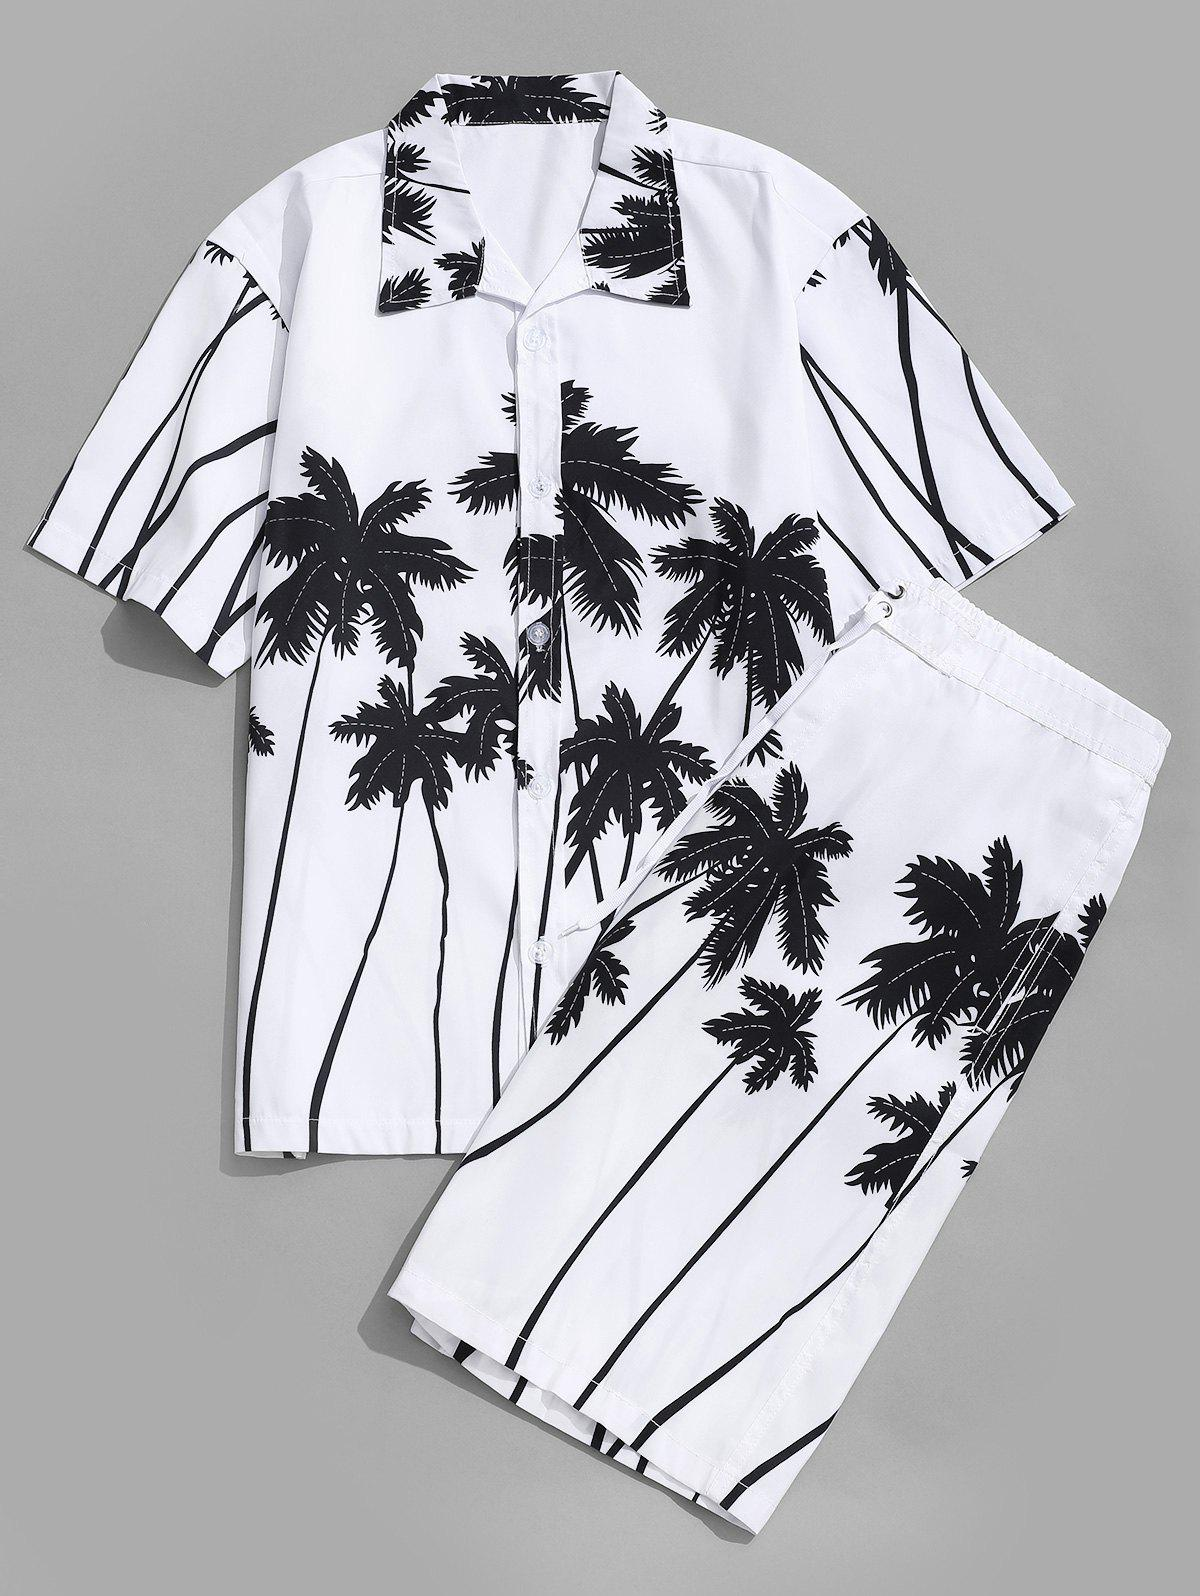 Unique Coconut Palm Printed Hawaii Shirt and Beach Shorts